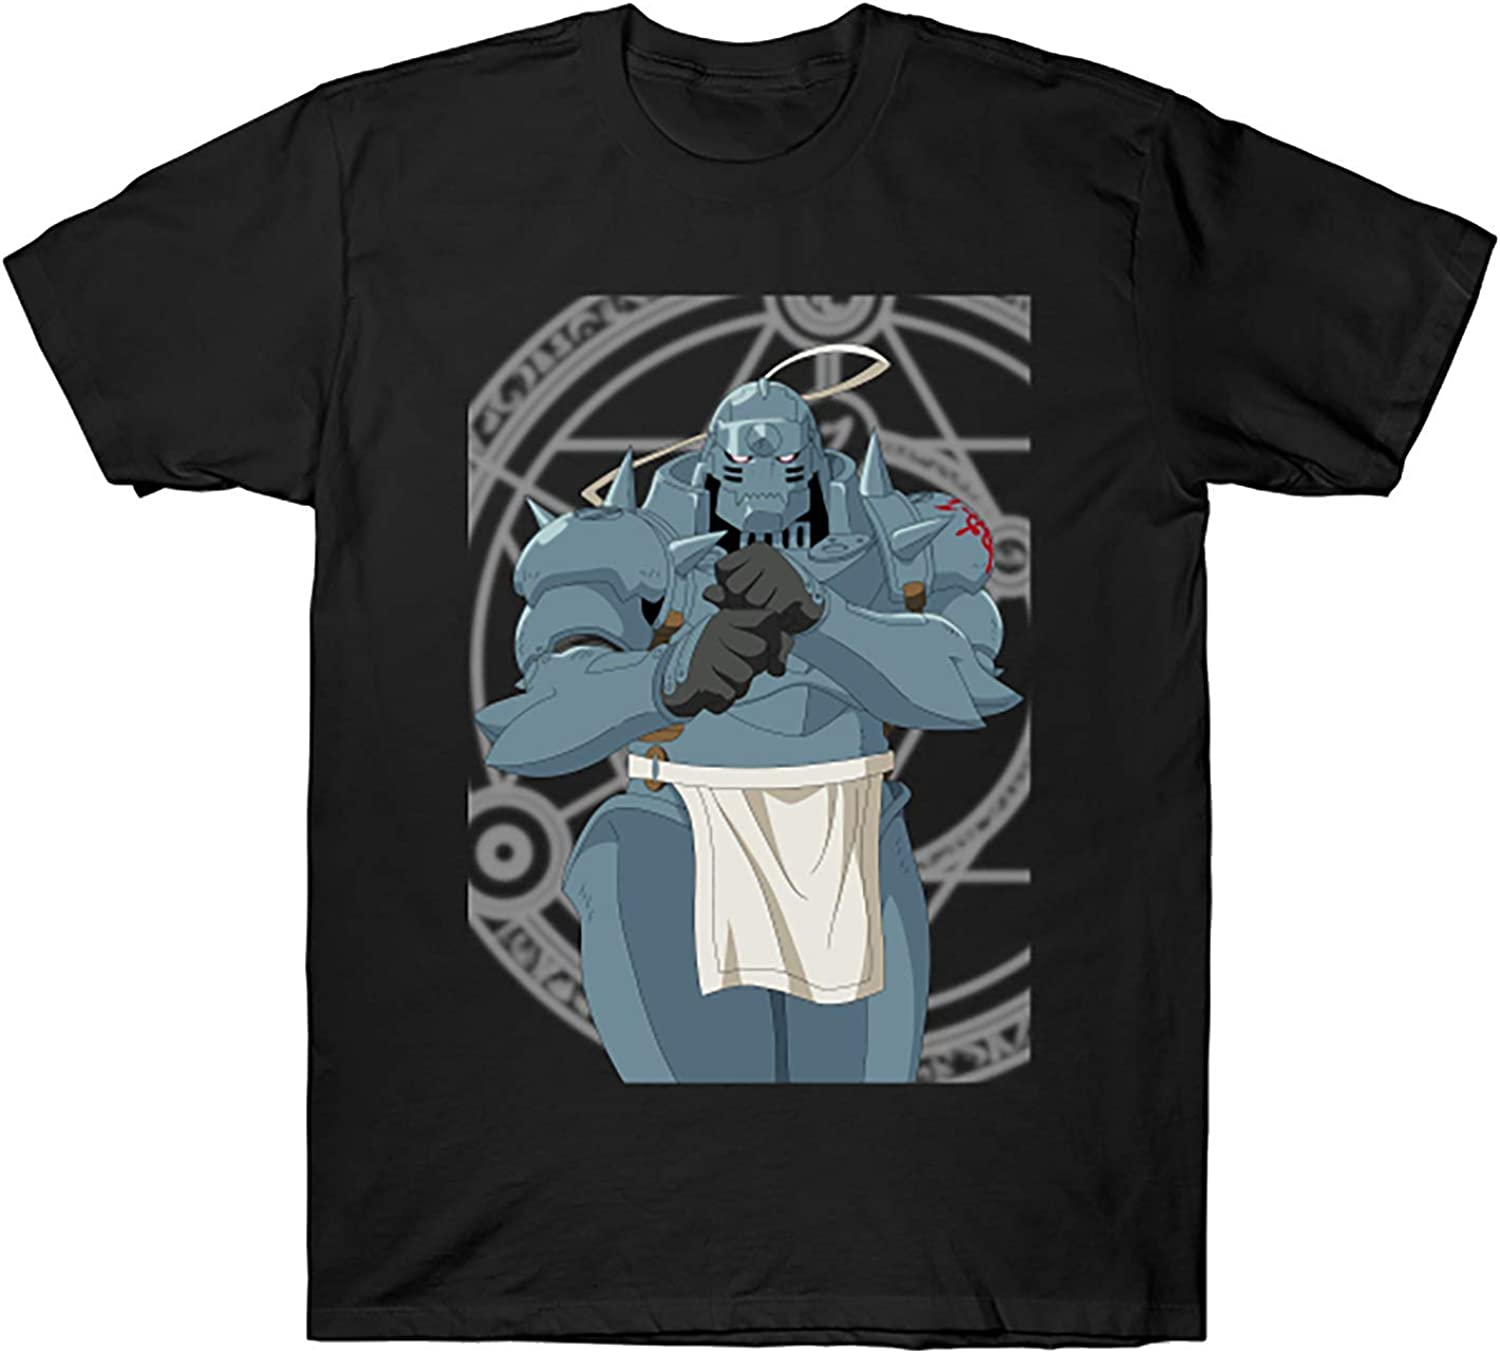 Anime Fullmetal Special Campaign Alchemist Alphonse Elric Tank T-Shirt To Hoodie Miami Mall